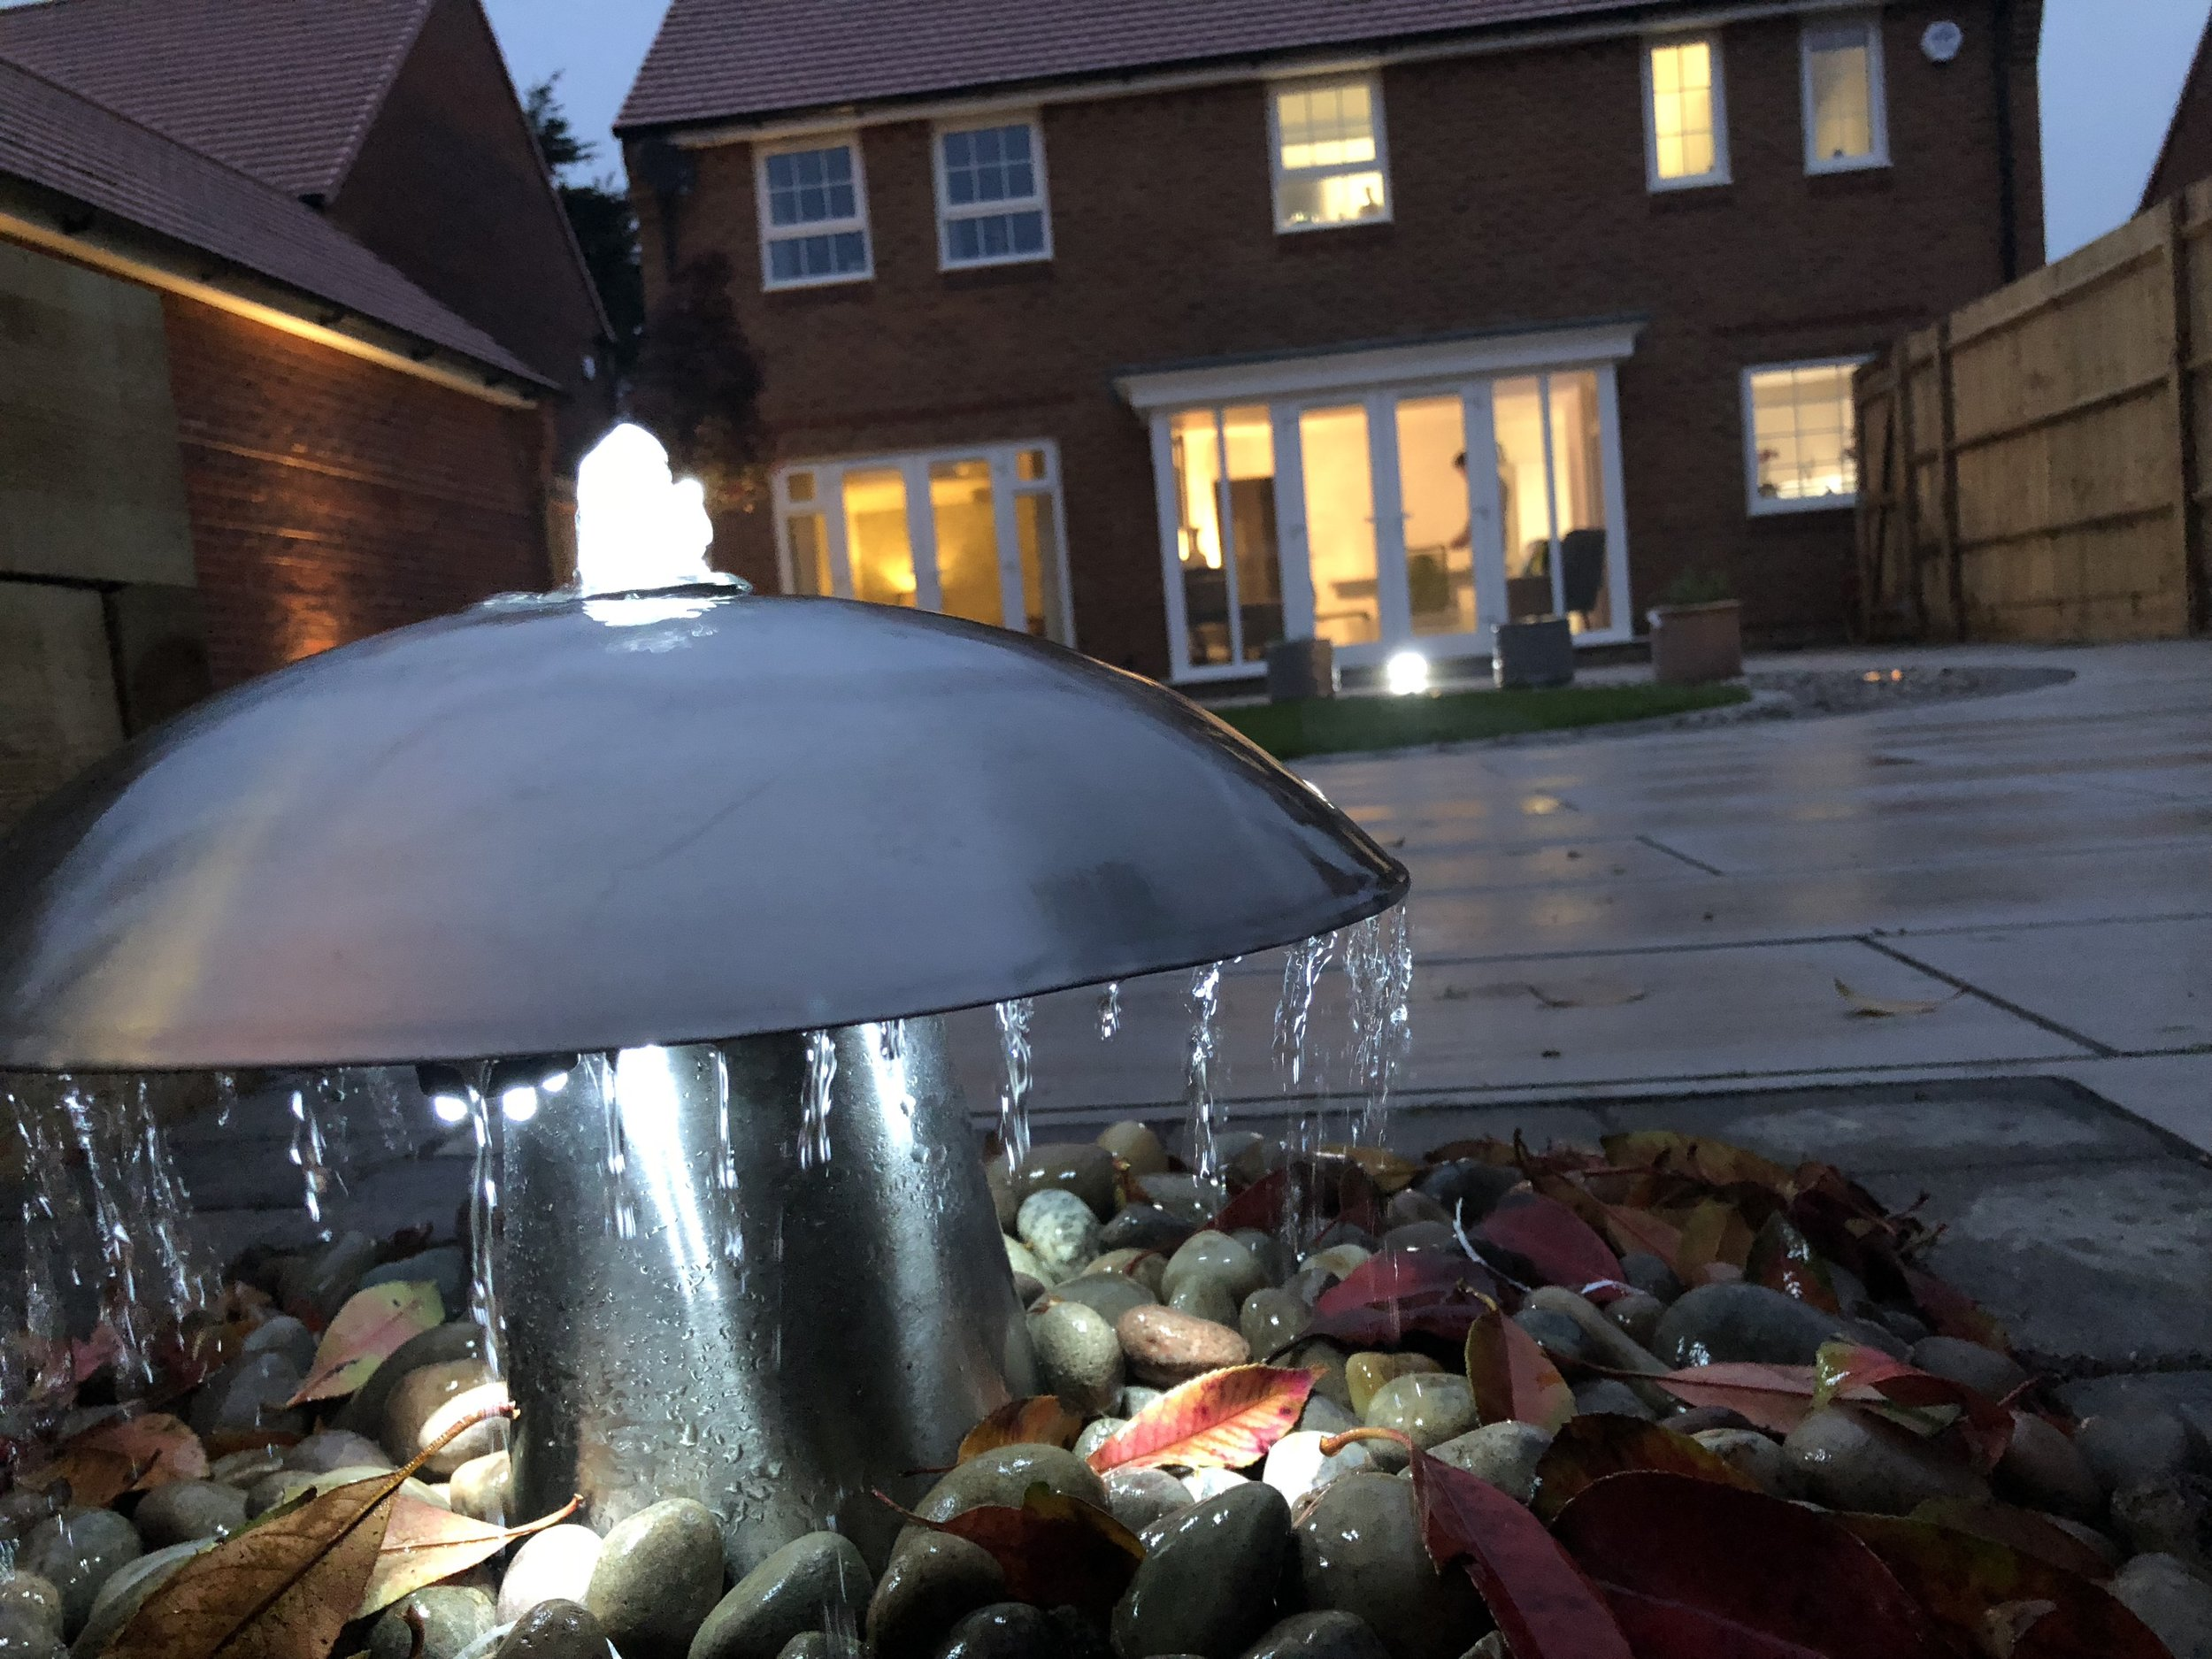 Installing a water feature in this garden with lighting, creating a really nice ambience.